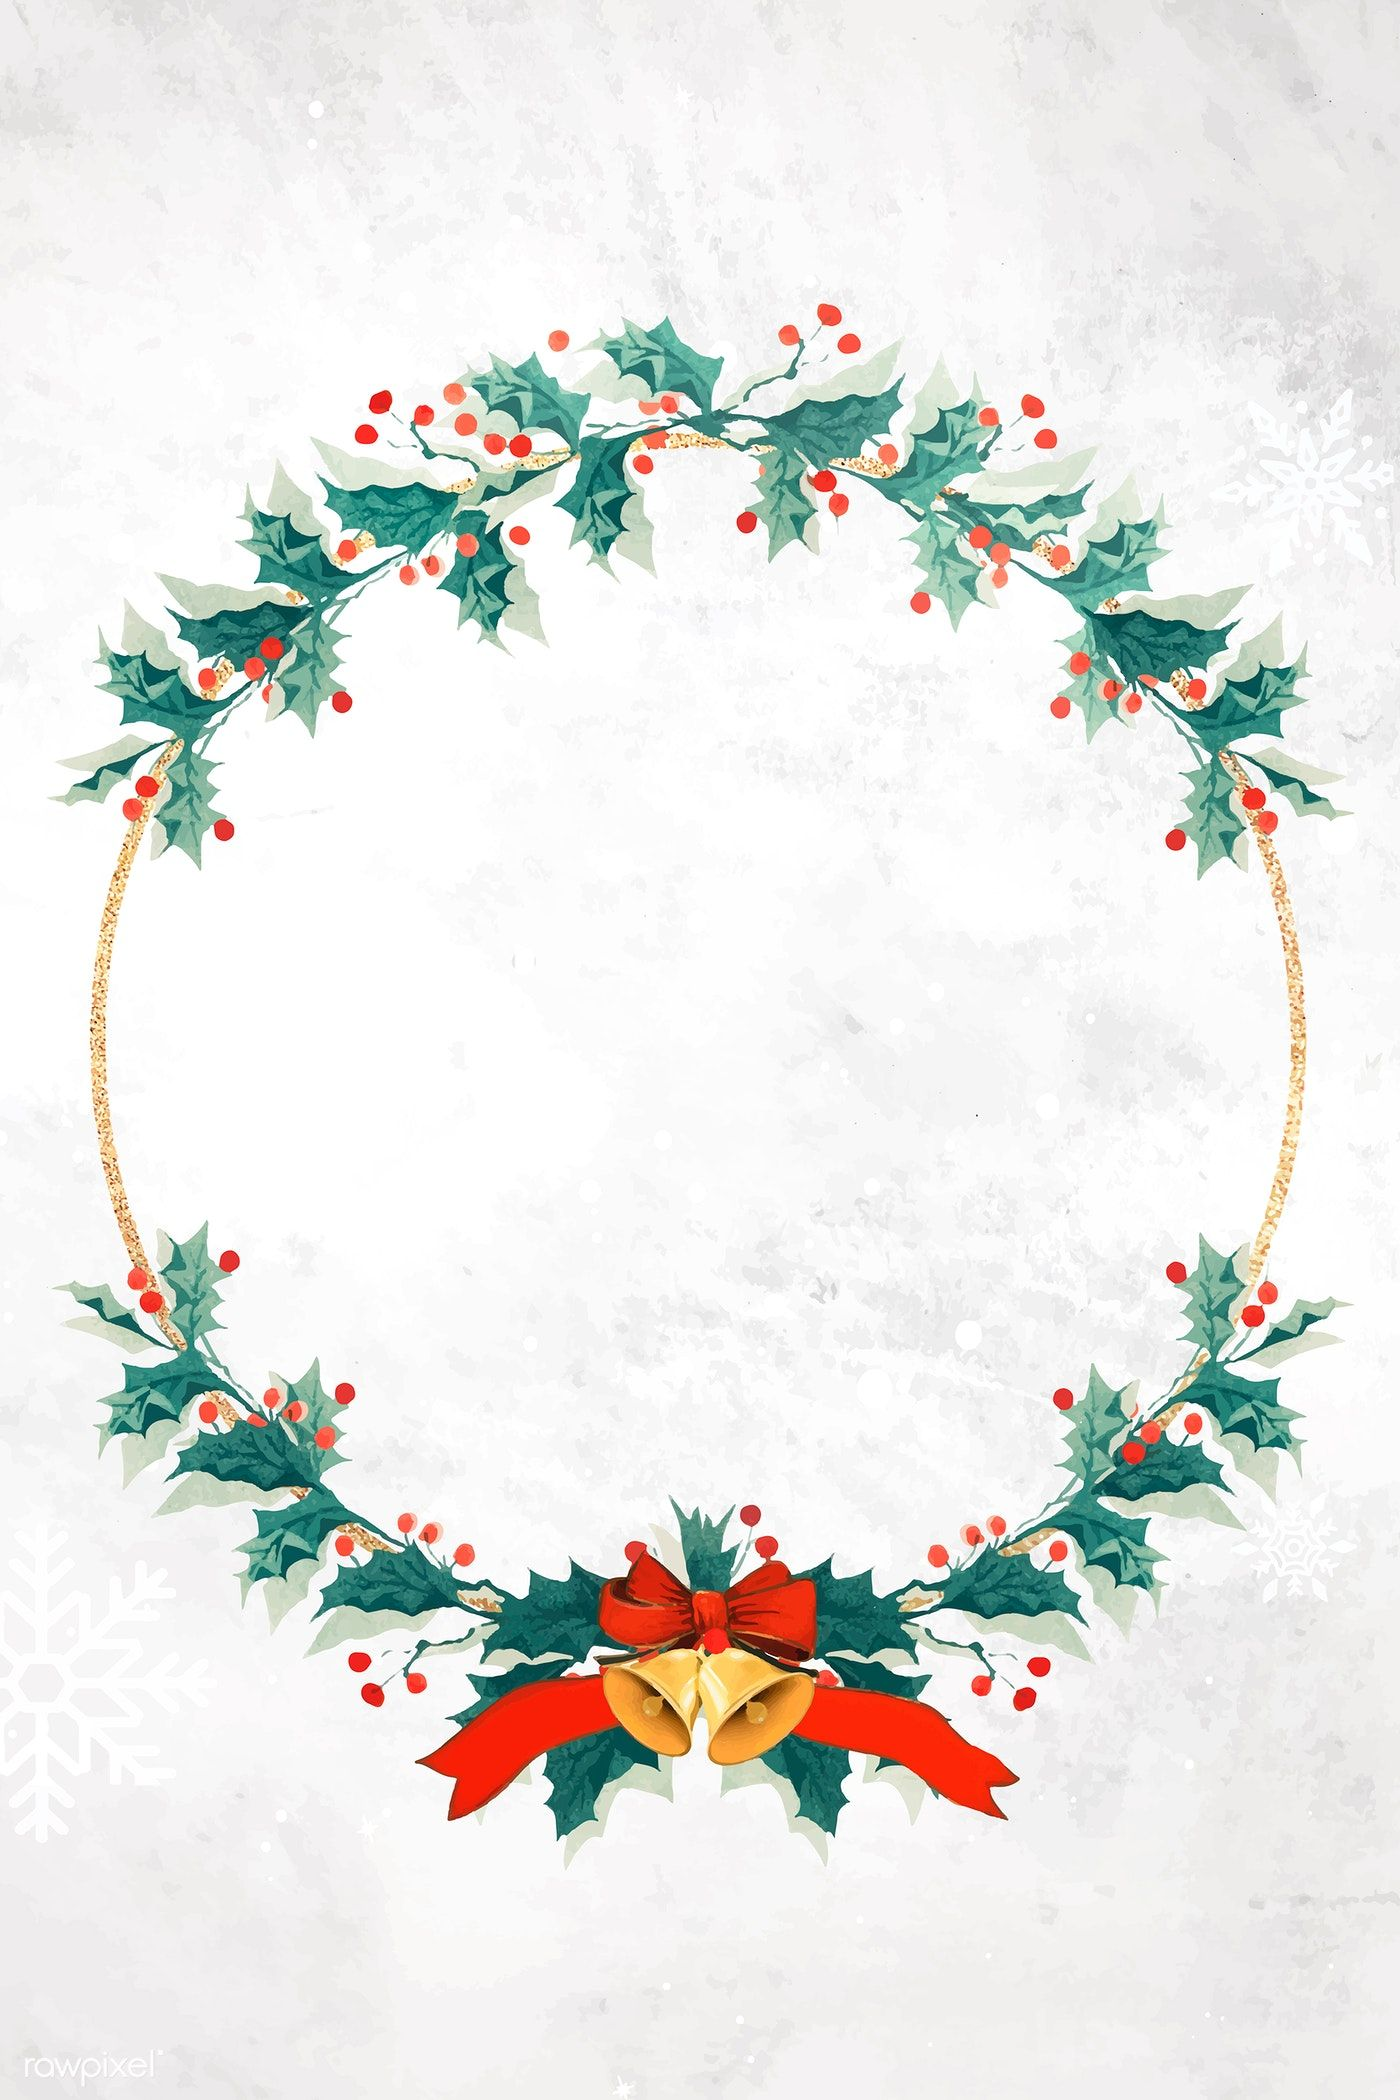 Download Premium Vector Of Blank Festive Christmas Wreath Vector 1228694 Christmas Wreath Designs Wreath Designs Merry Christmas Images